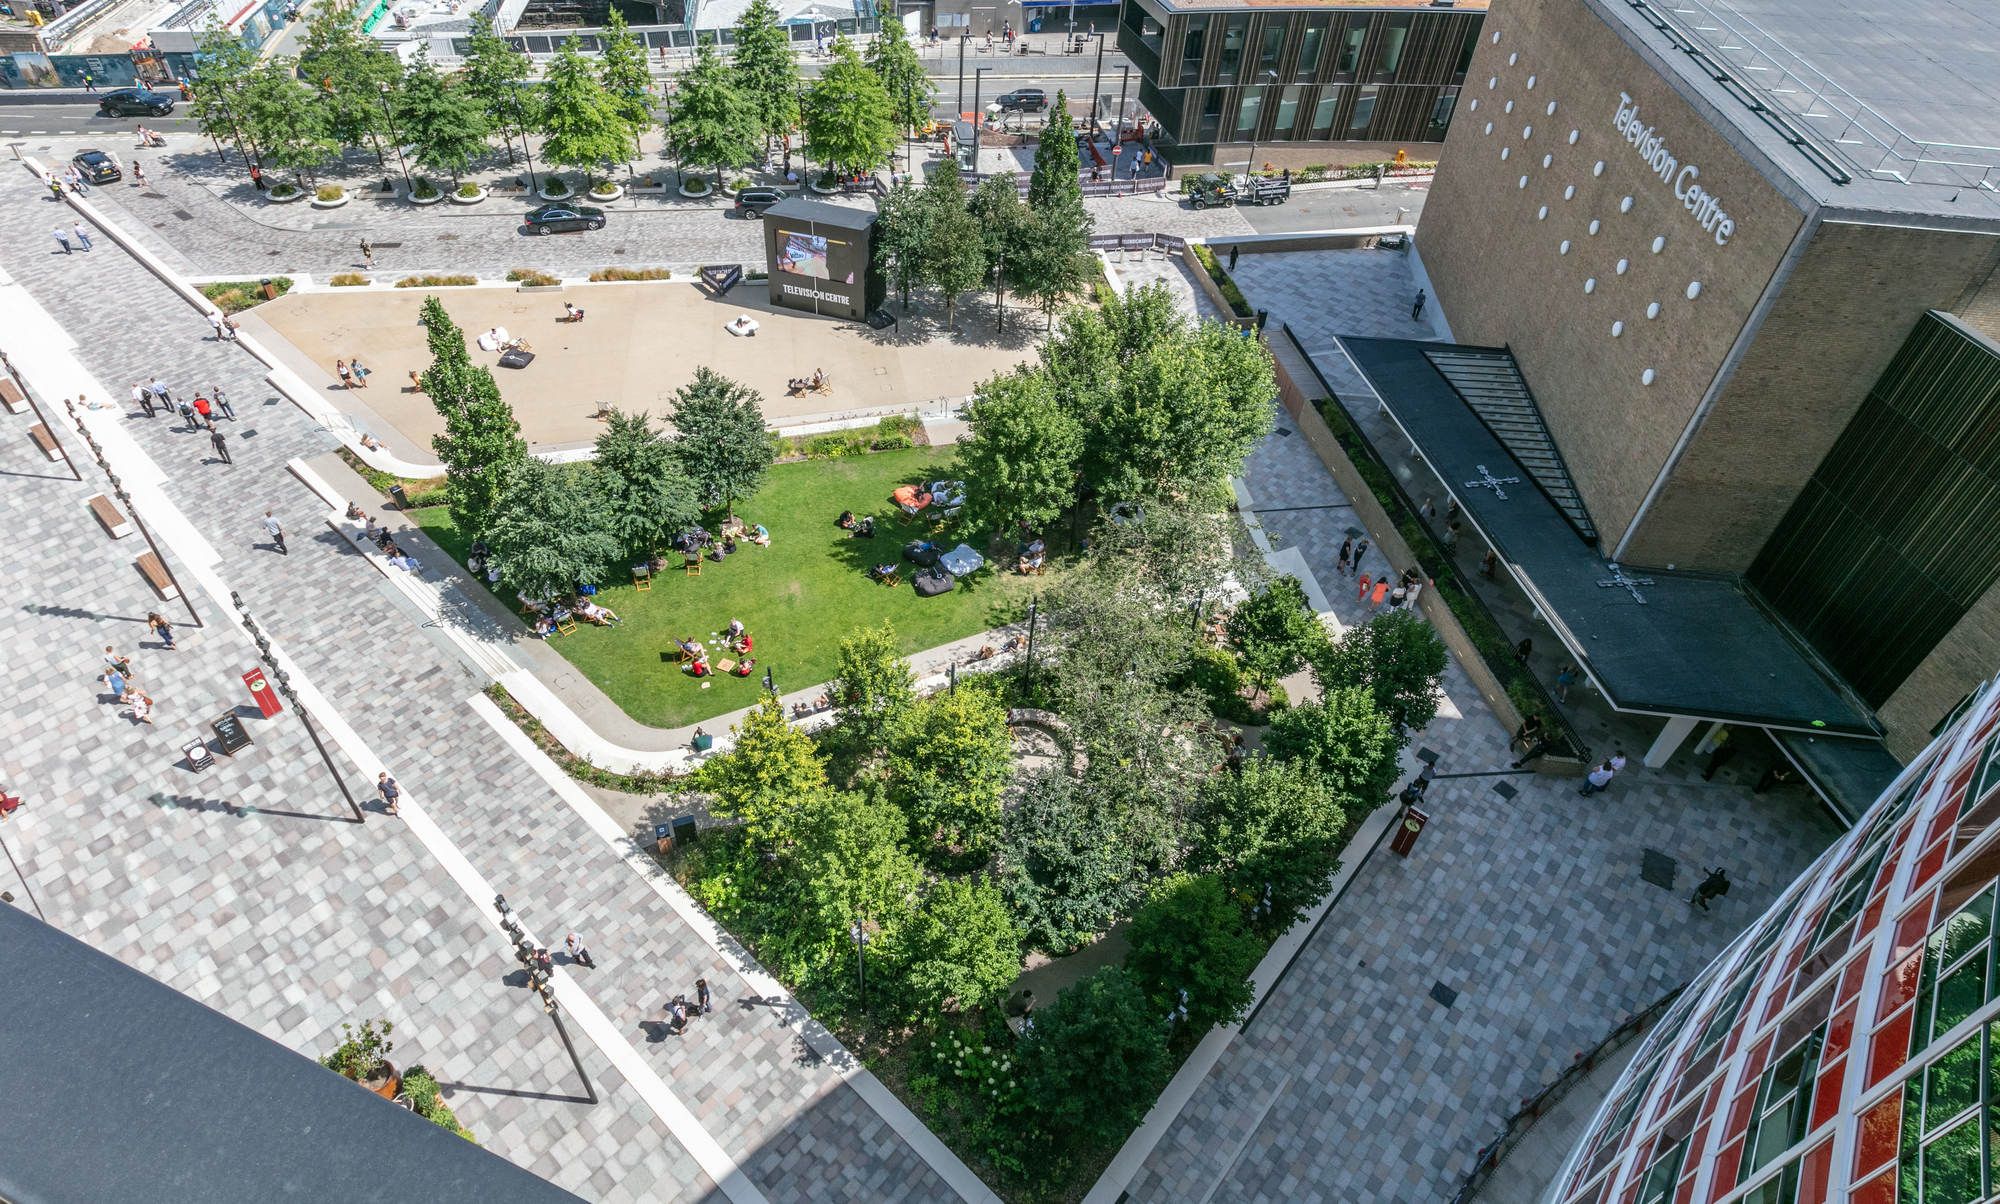 The truly mixed-use development features office and studio space for the BBC, entertainment and leisure facilities, new homes and private residential gardens and a hotel as well as public spaces.